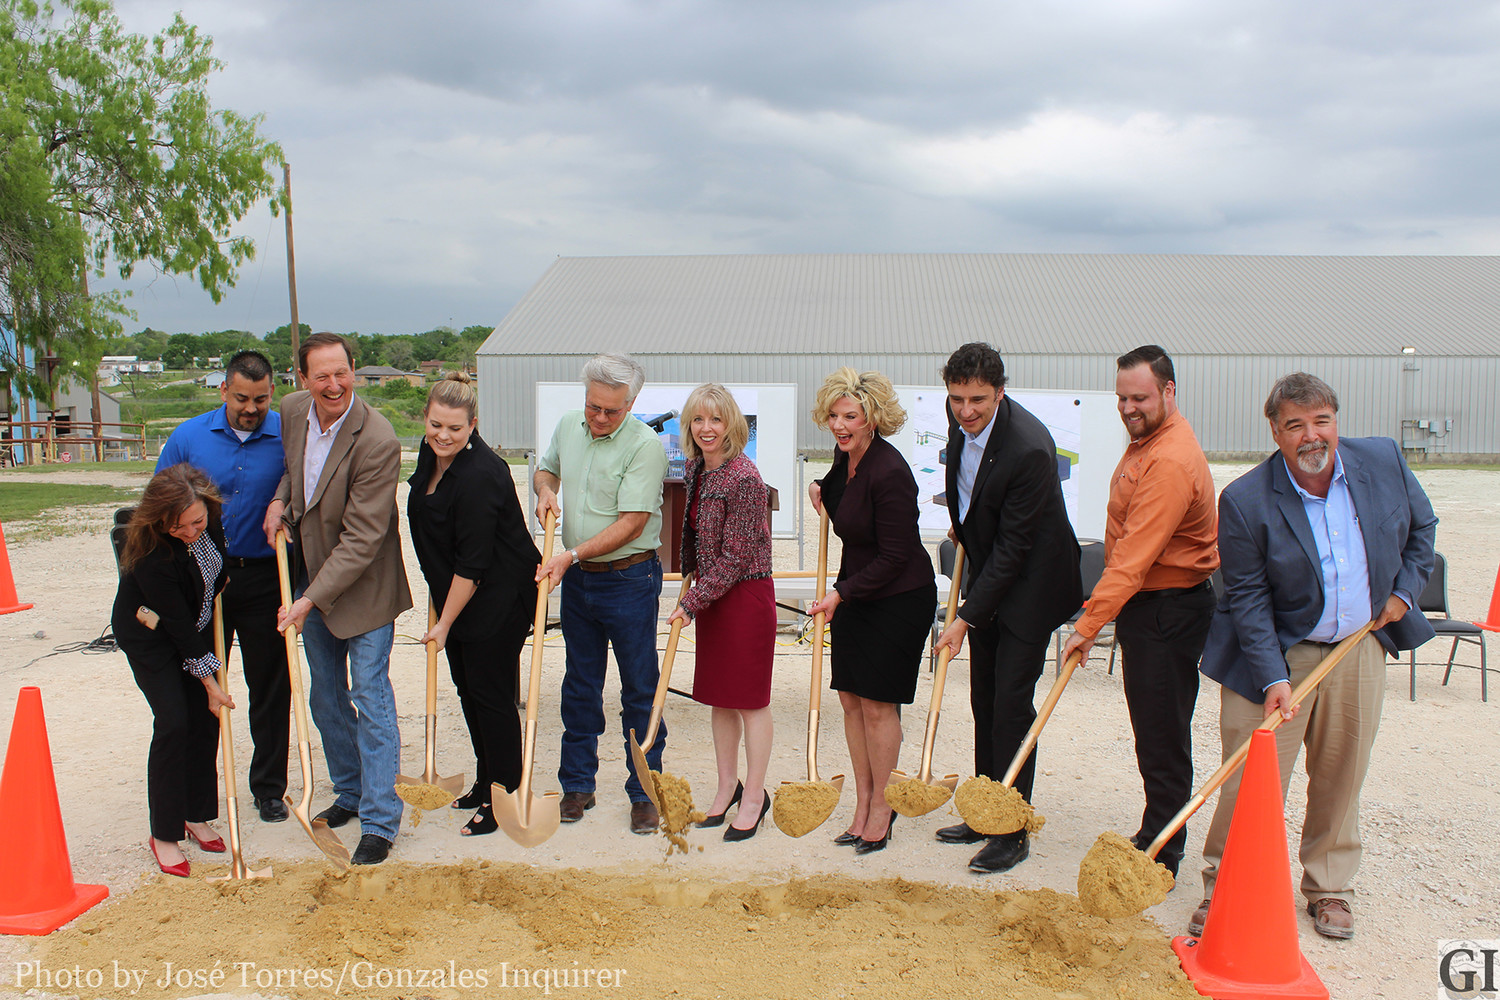 The groundbreaking ceremony for BYK's historic $50 million expansion project took place on Thursday, April 12. Pictured with the first shovels are: Dr. Kim Strozier of the Gonzales Independent School District, Justin Schwausch of GVEC and a member of the GISD school board, Arturo, a manager at BYK, Judge David Bird, Lindsay Dennis (Governor's Office), Dr. Ken Gottwald from the Gonzales Hospital District, Alison Avery (BYK North American operations president), Mayor Connie Kacir, Dr. Stephan Glander, BYK World operations president), Dewey Smith, and Glenn West, general manager at BYK in Gonzales, Texas.